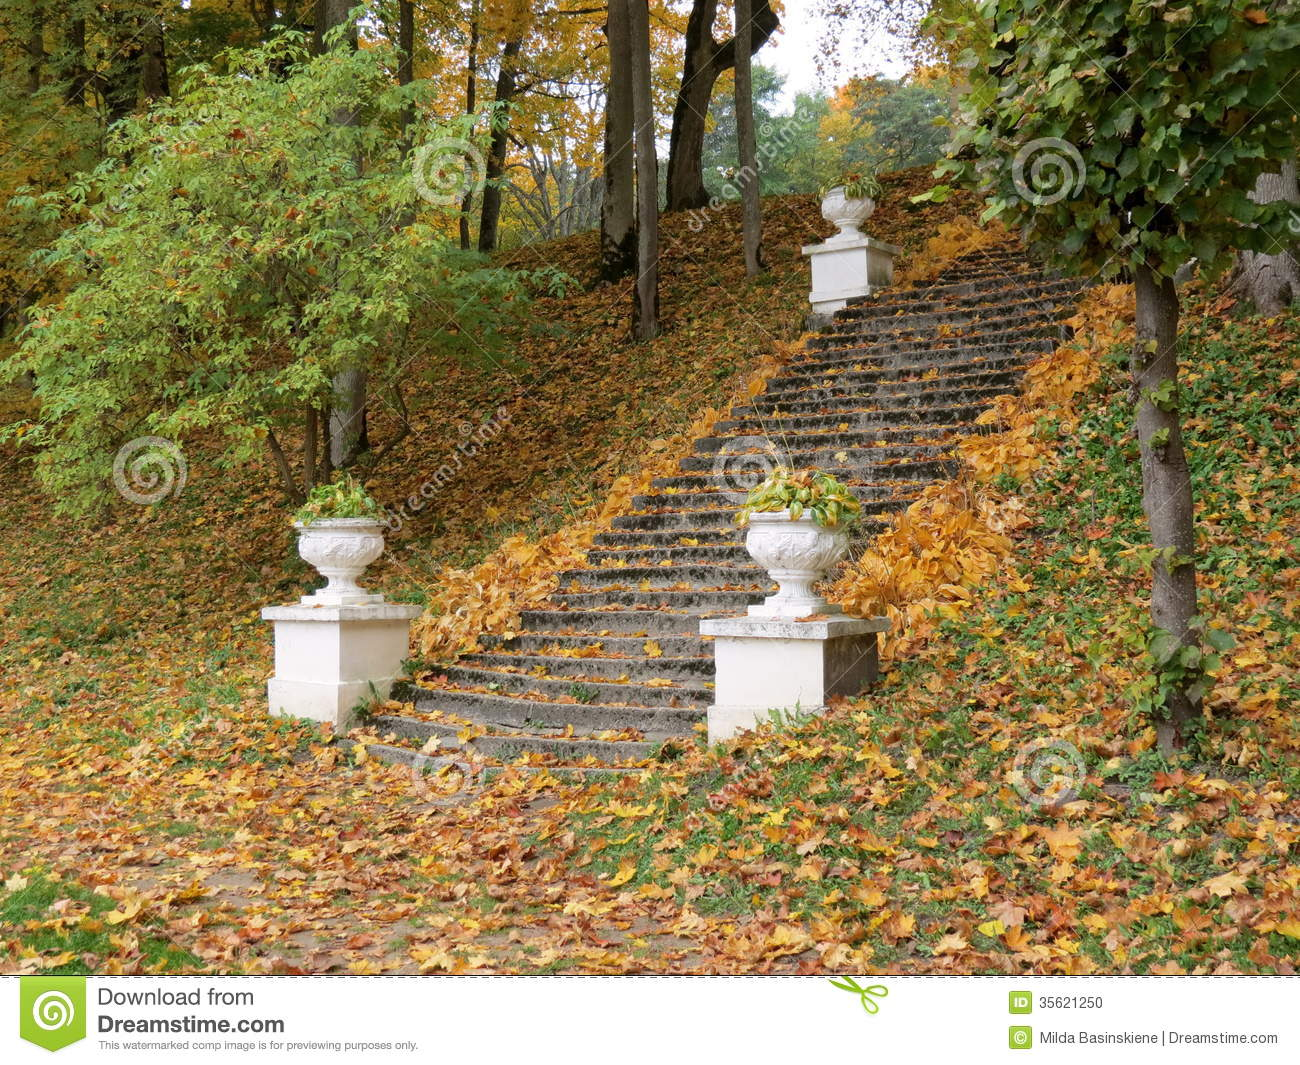 Stair in park